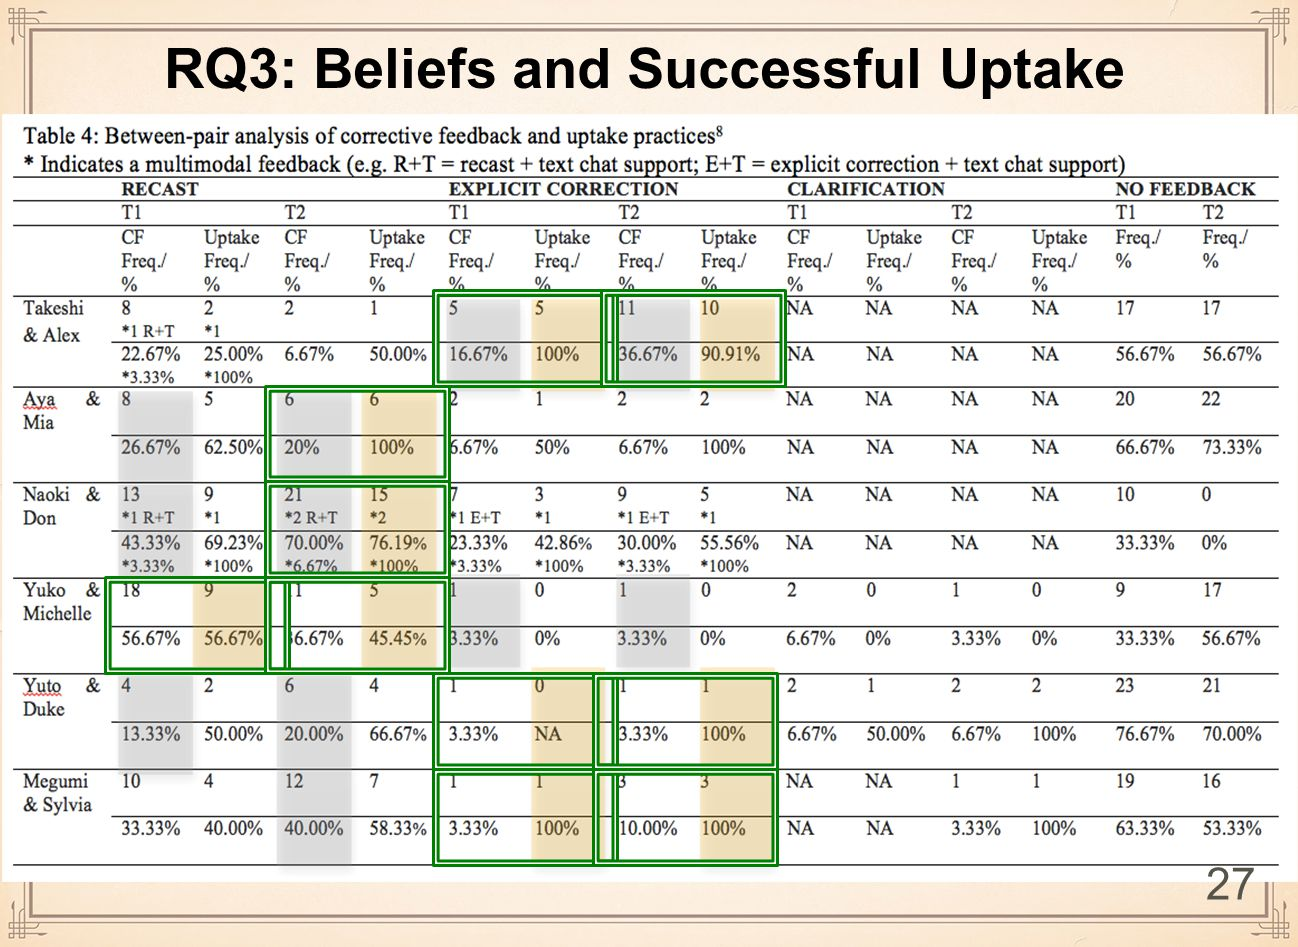 RQ3: Beliefs and Successful Uptake 27